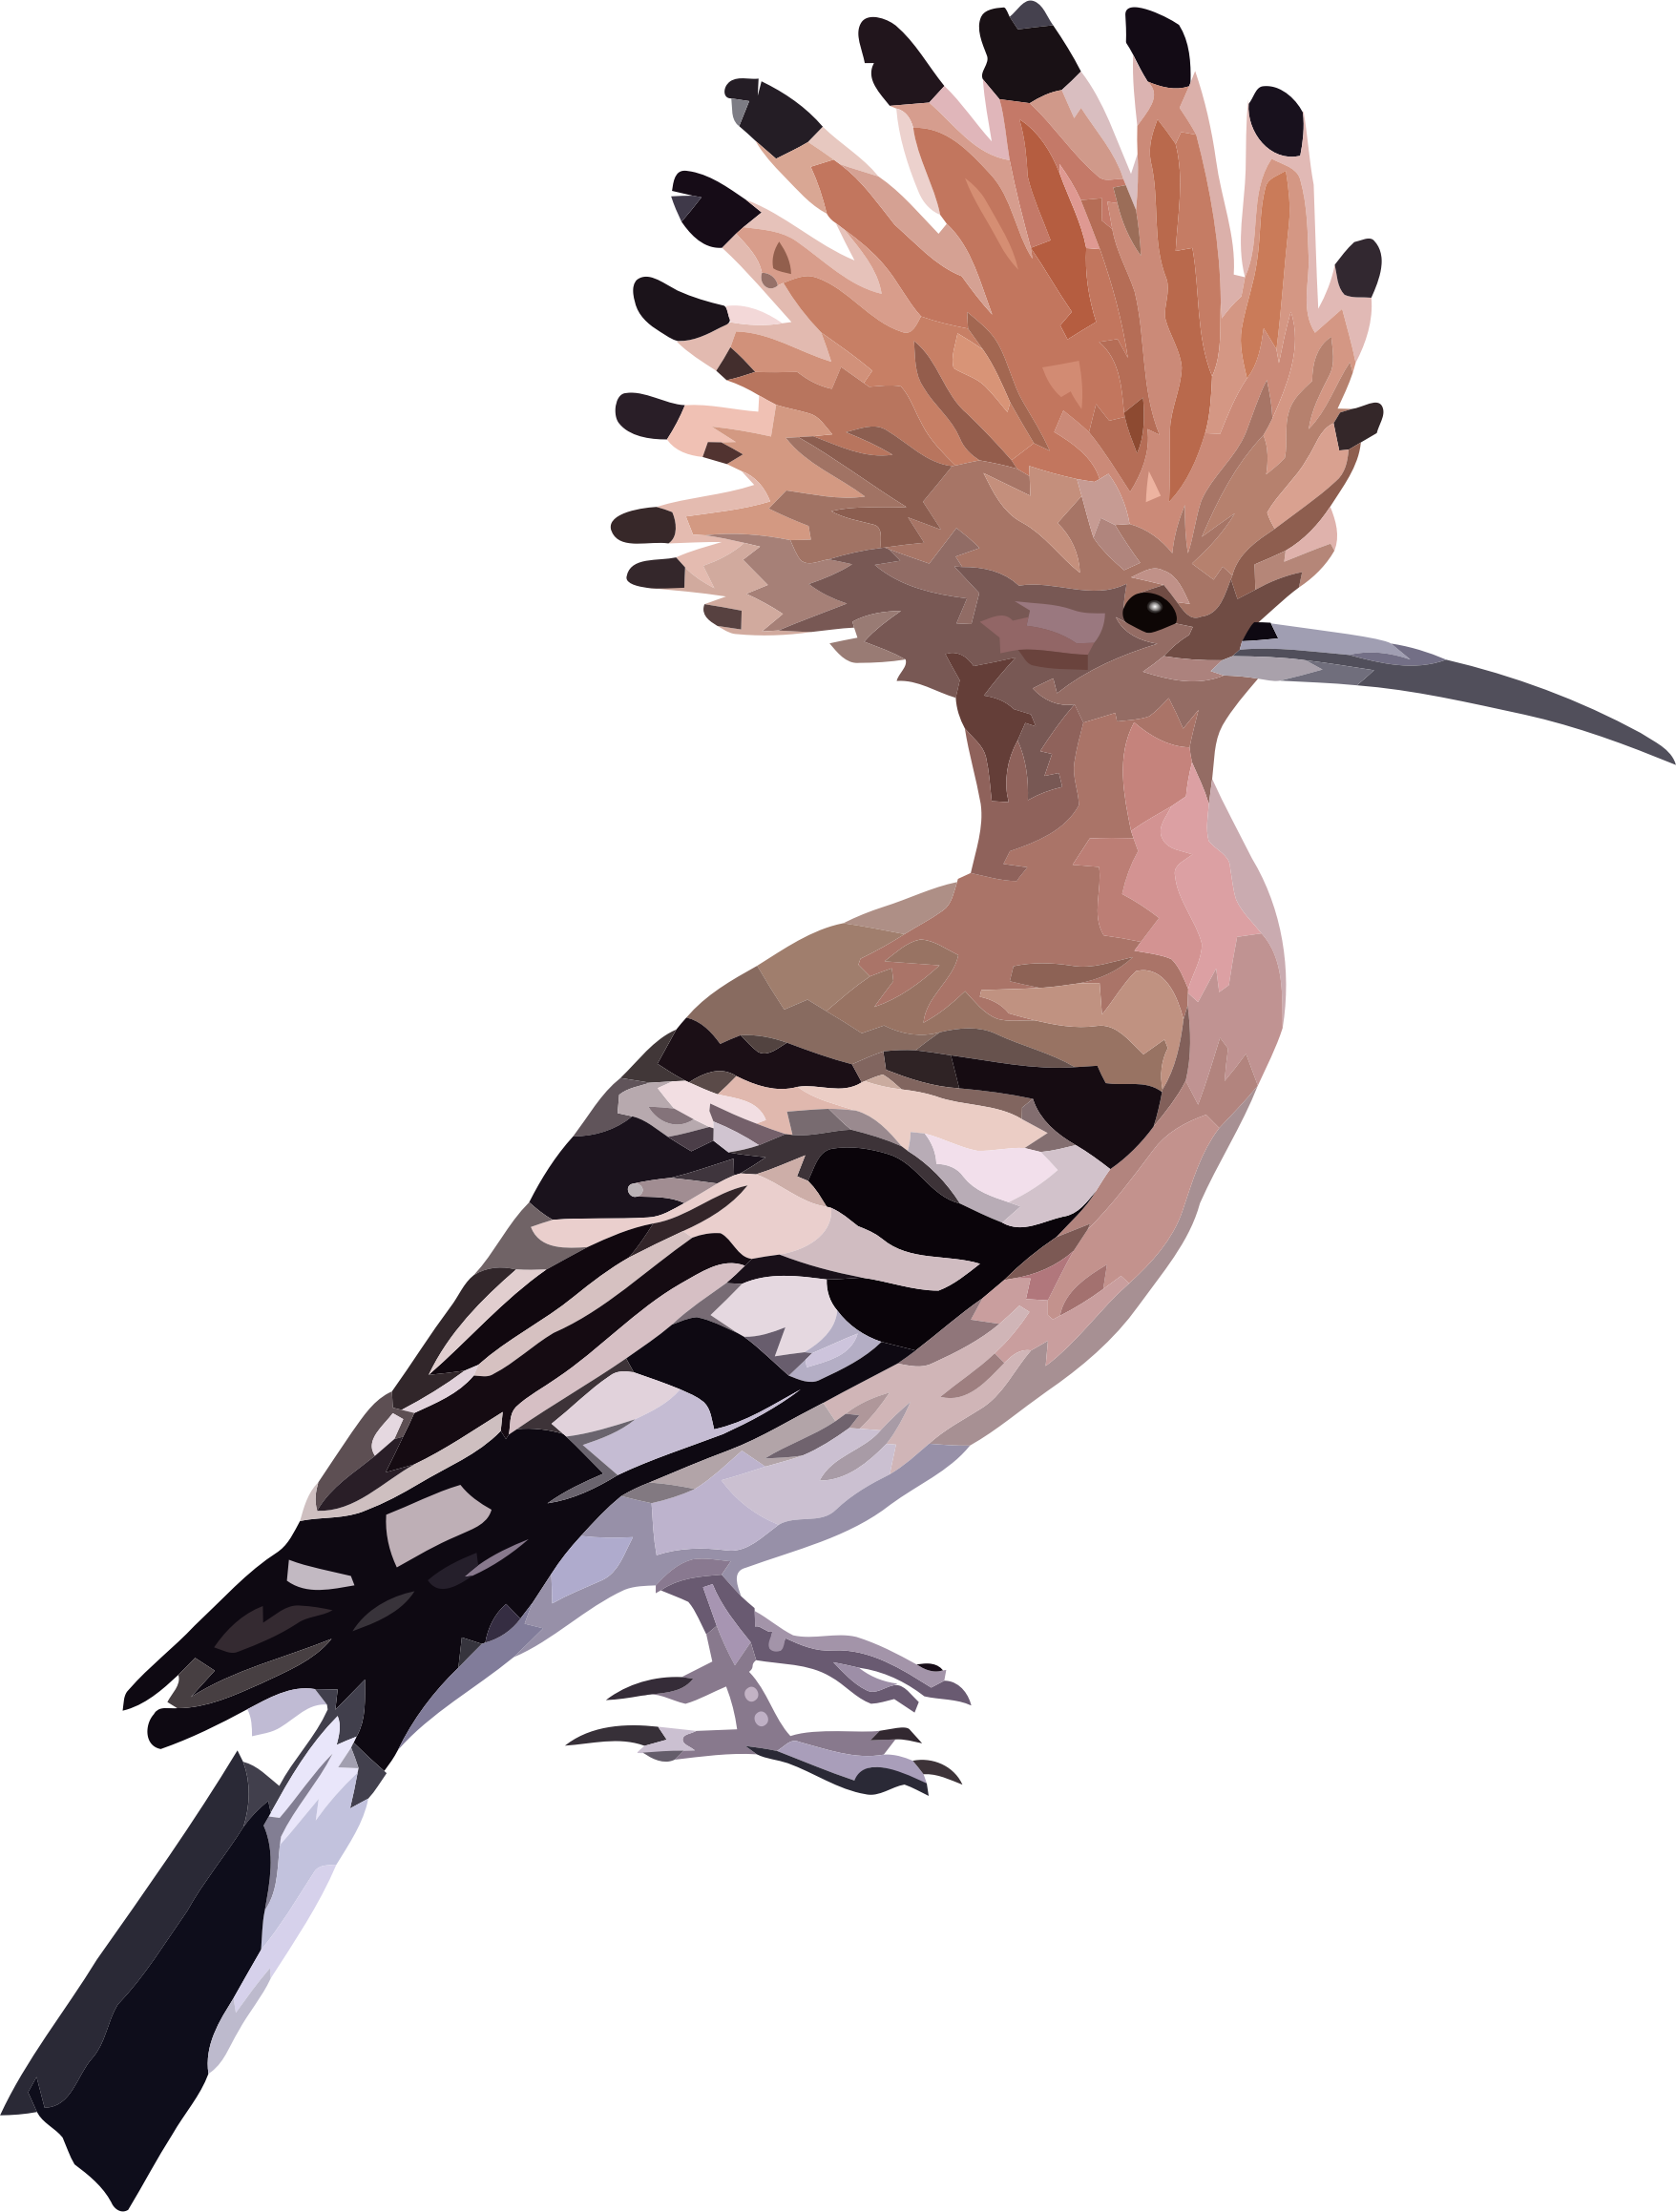 hoopoe by kwstasm83